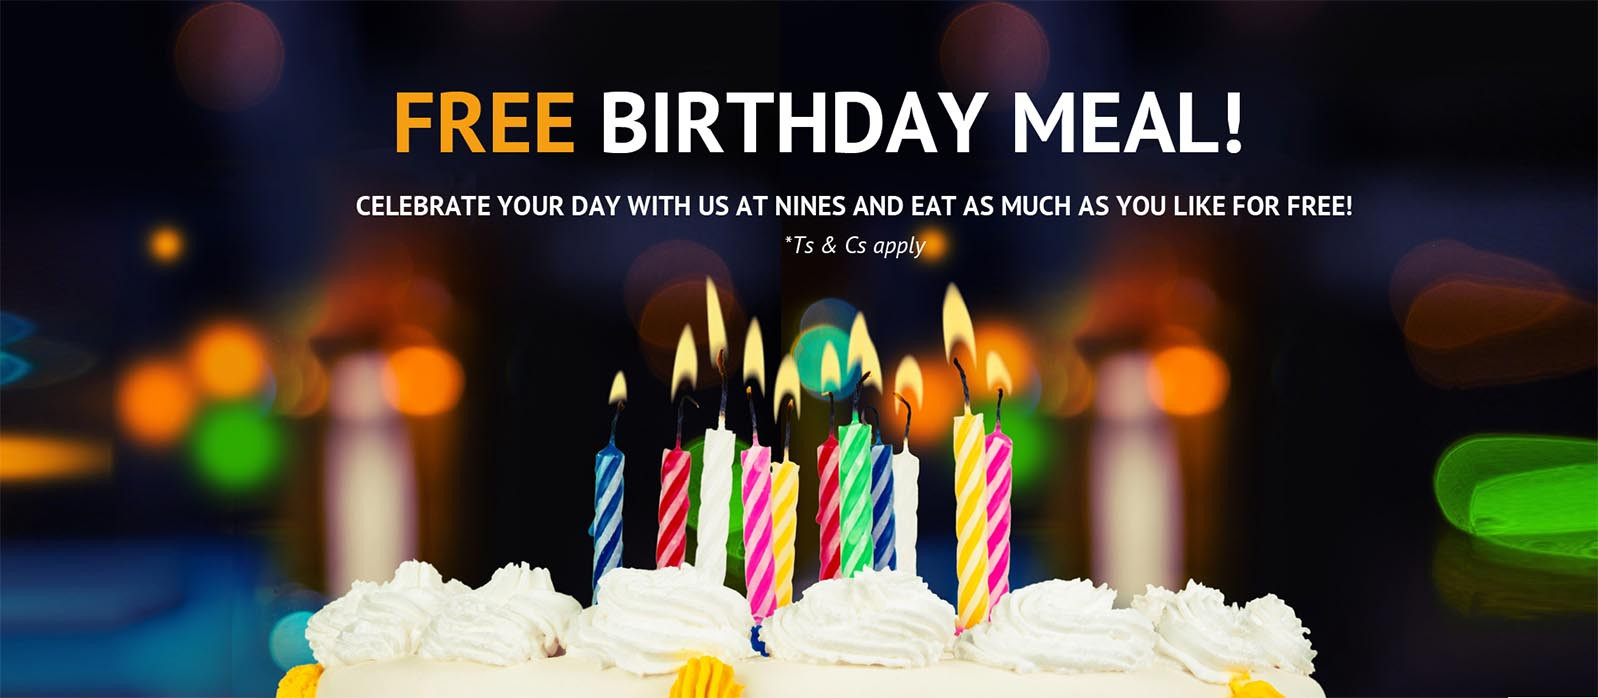 Free Dinner On Your Birthday  Free Birthday Meal NINES global buffet